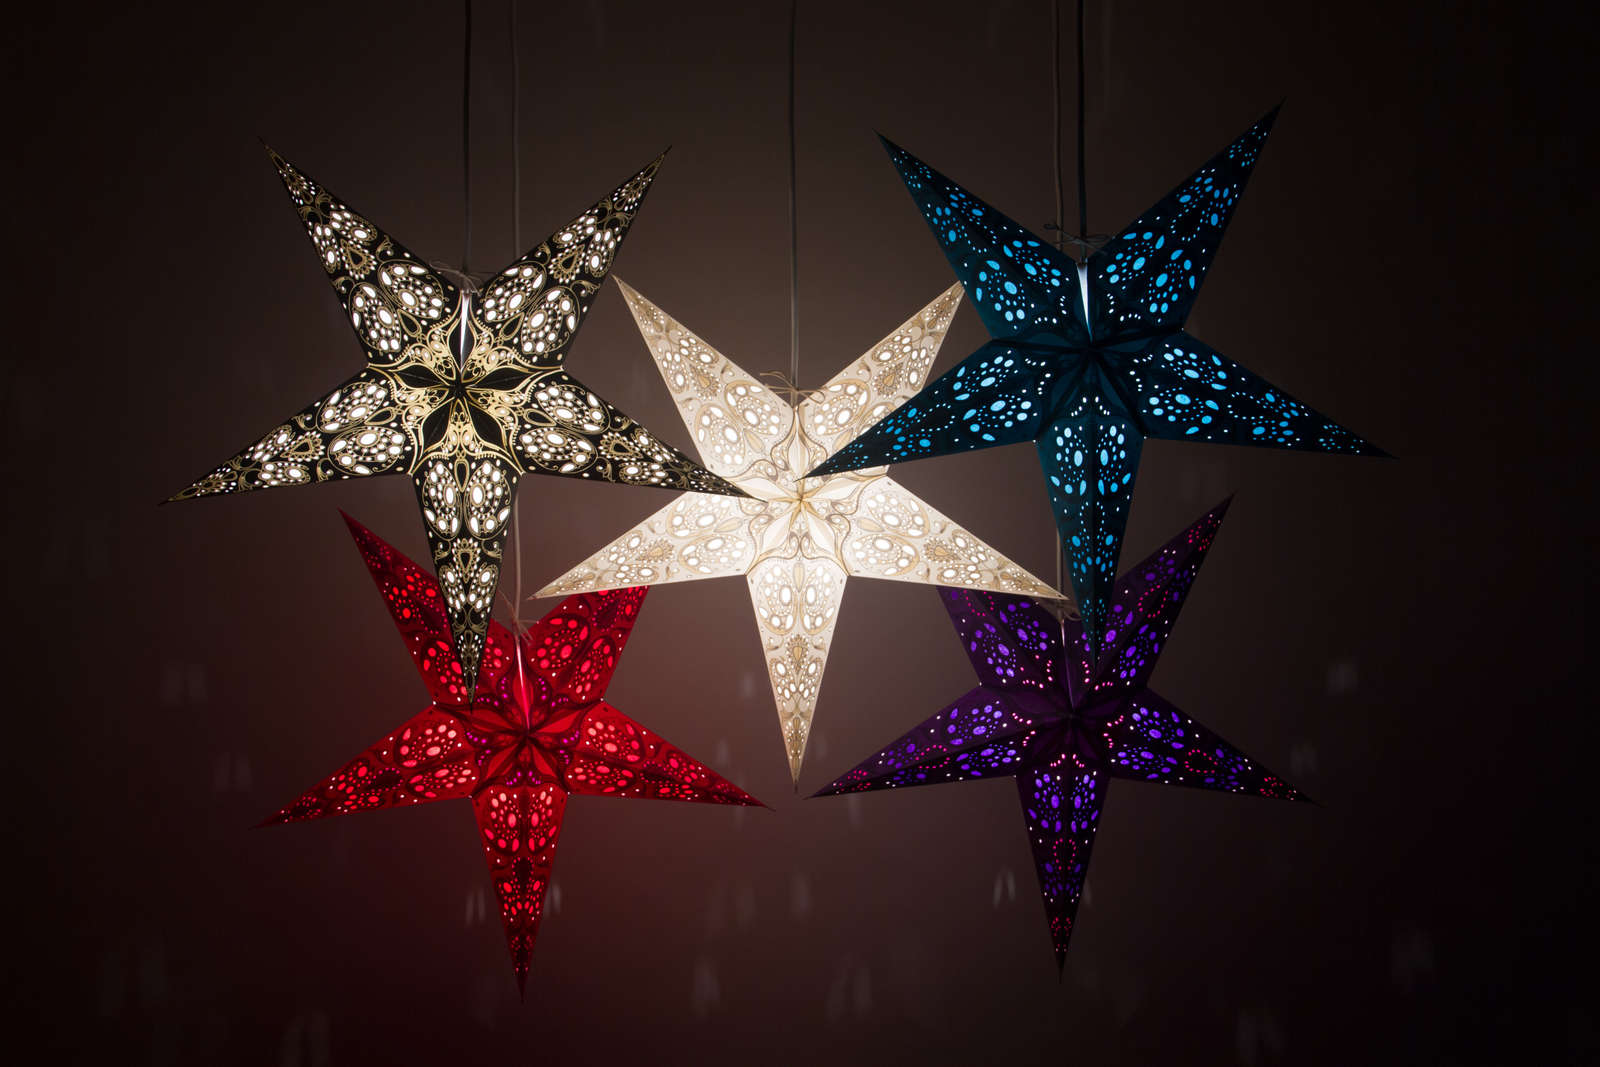 Lace Decorative Paper Star Lanterns & Light Shades